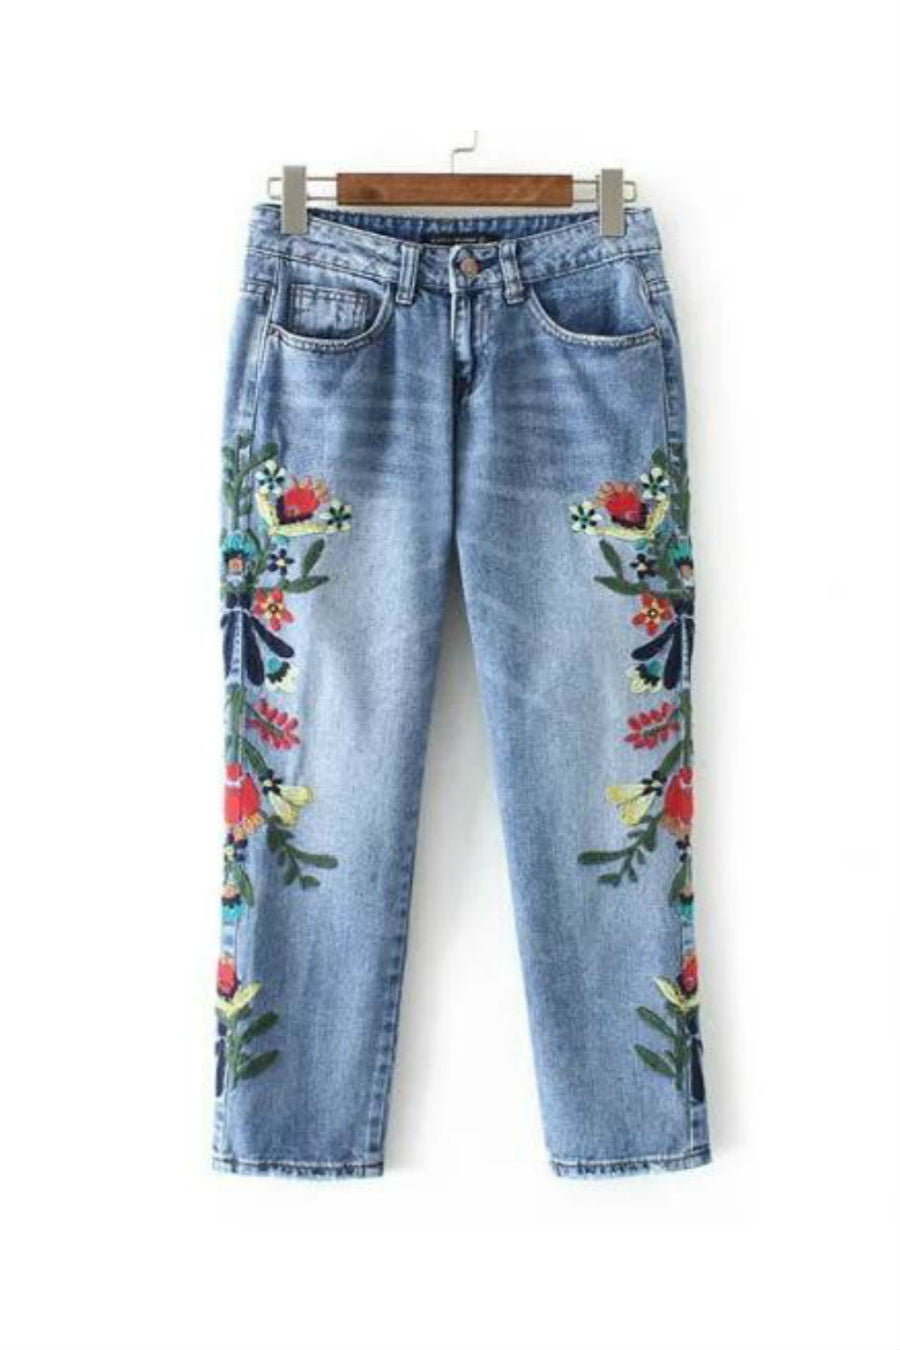 Floral Embroidery Ankle Jeans